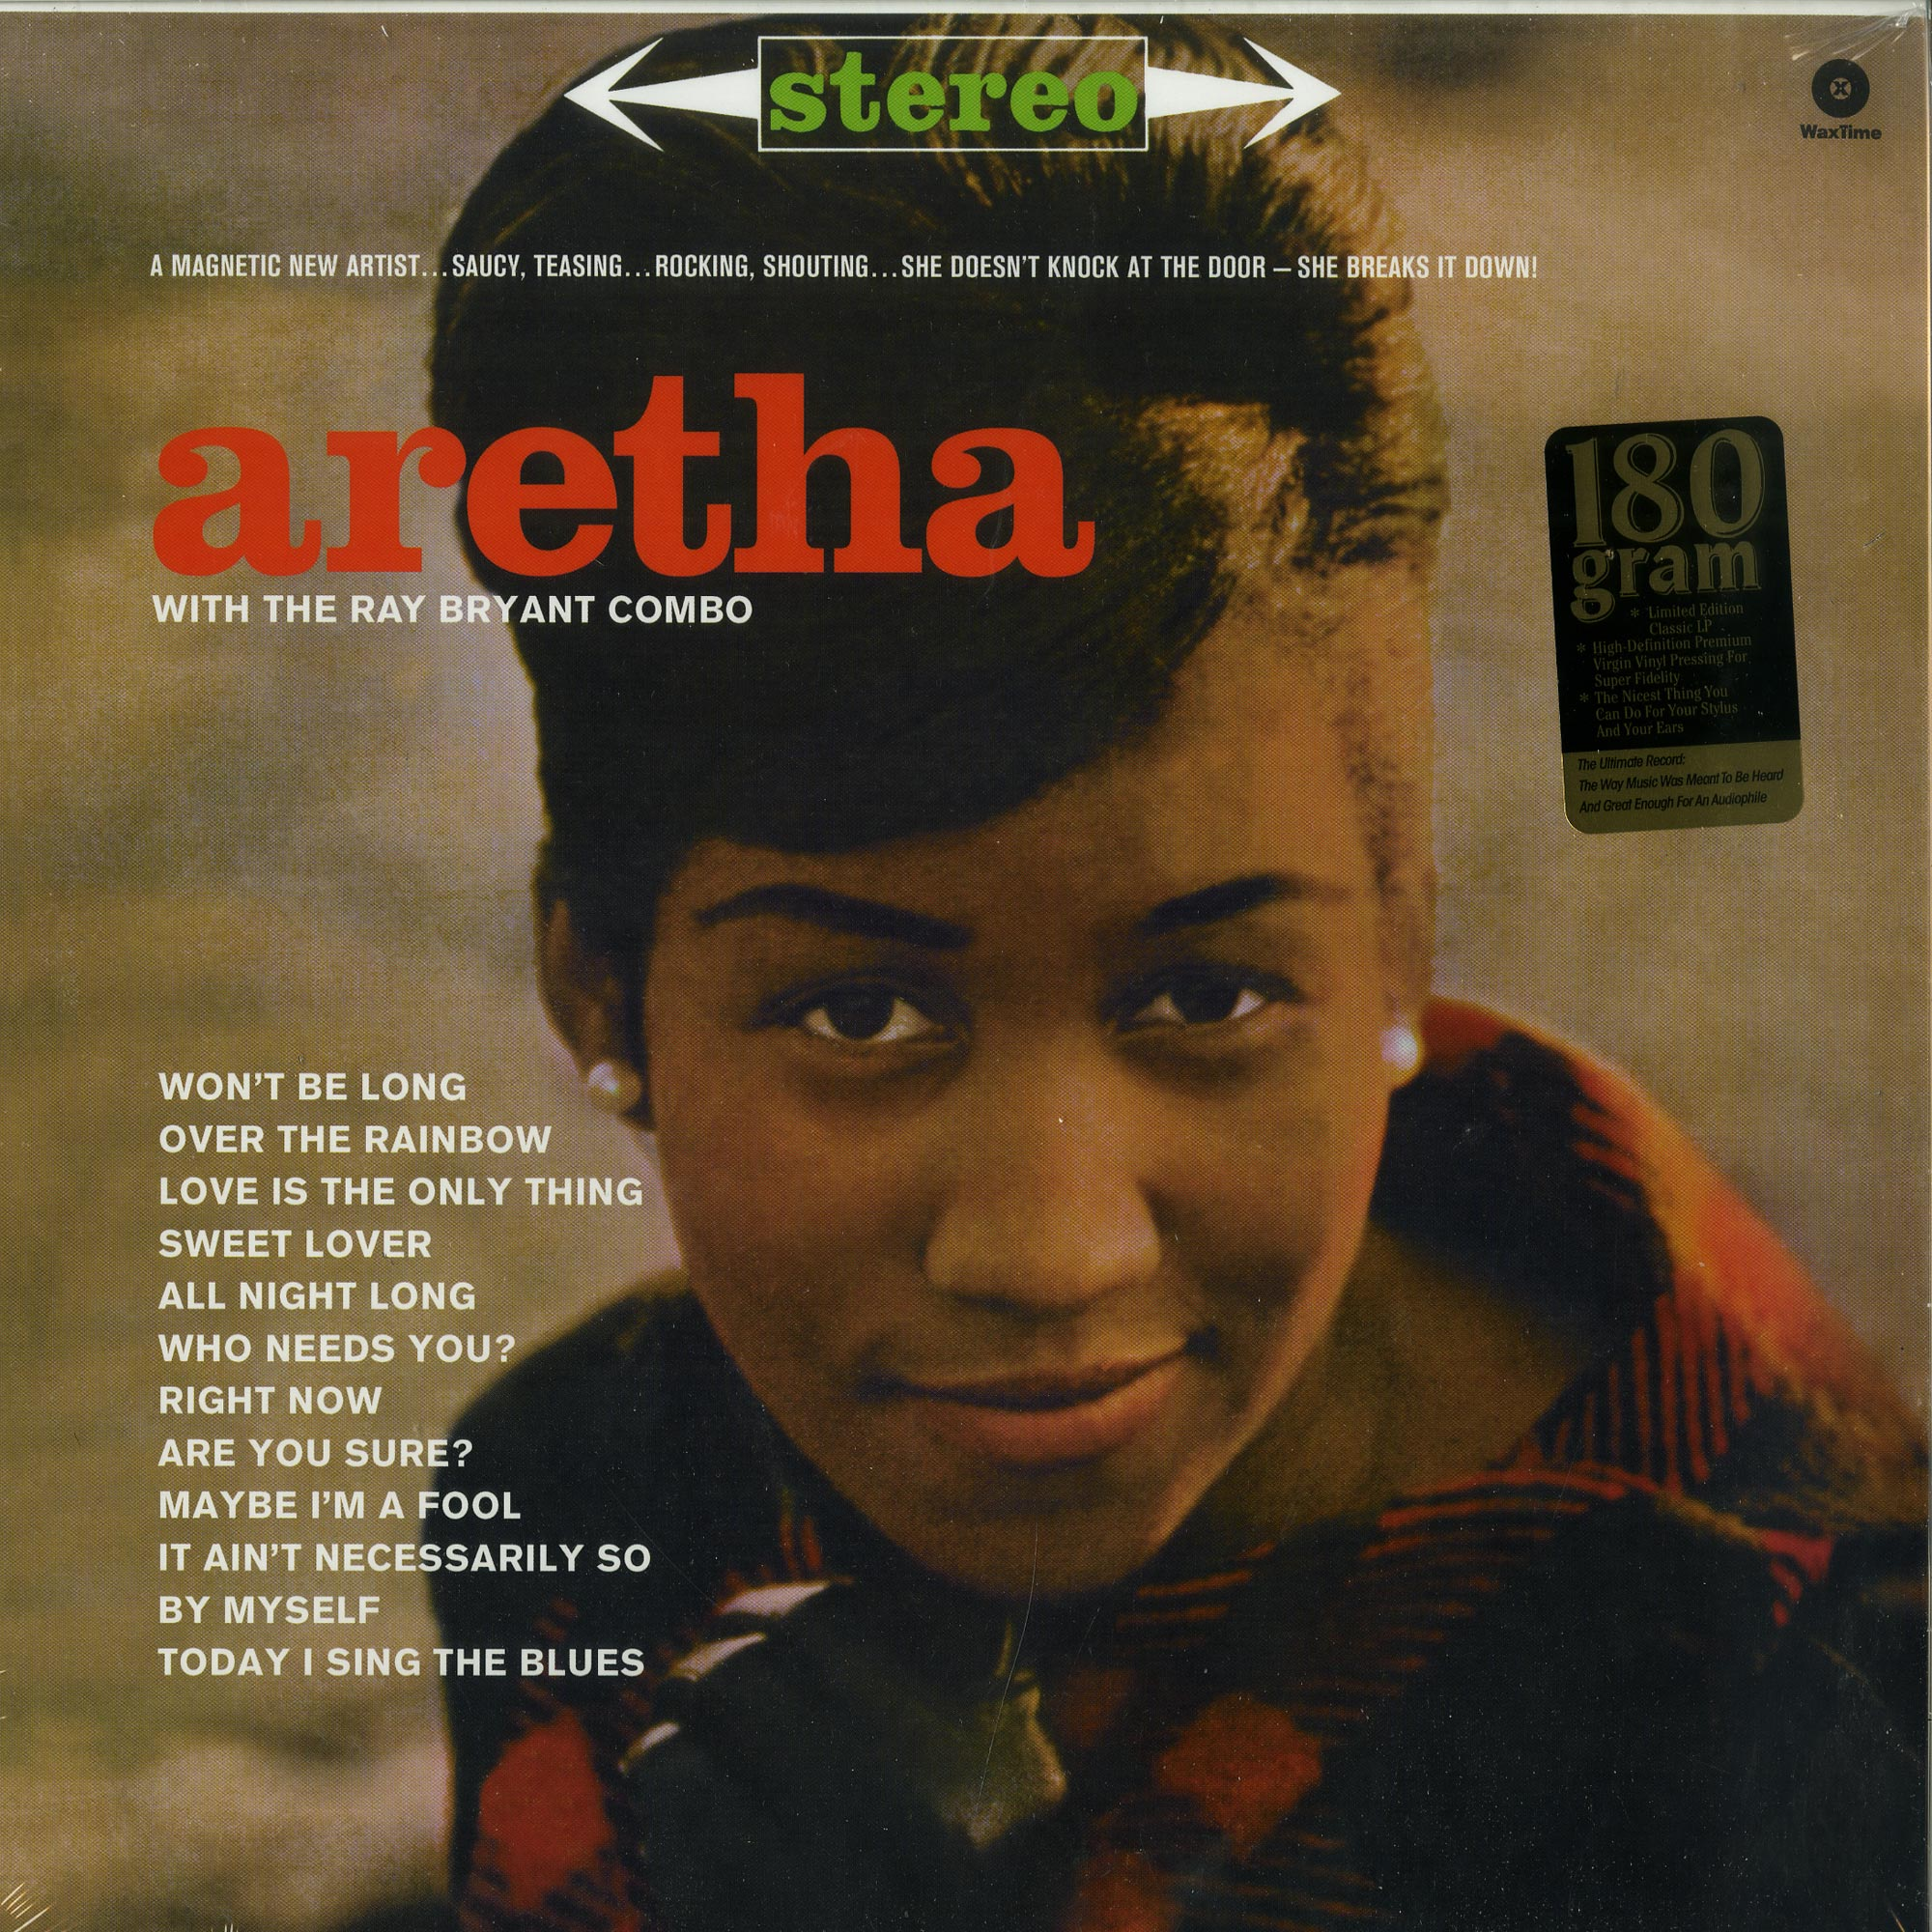 Aretha Franklin with the Ray Bryant Combo - ARETHA